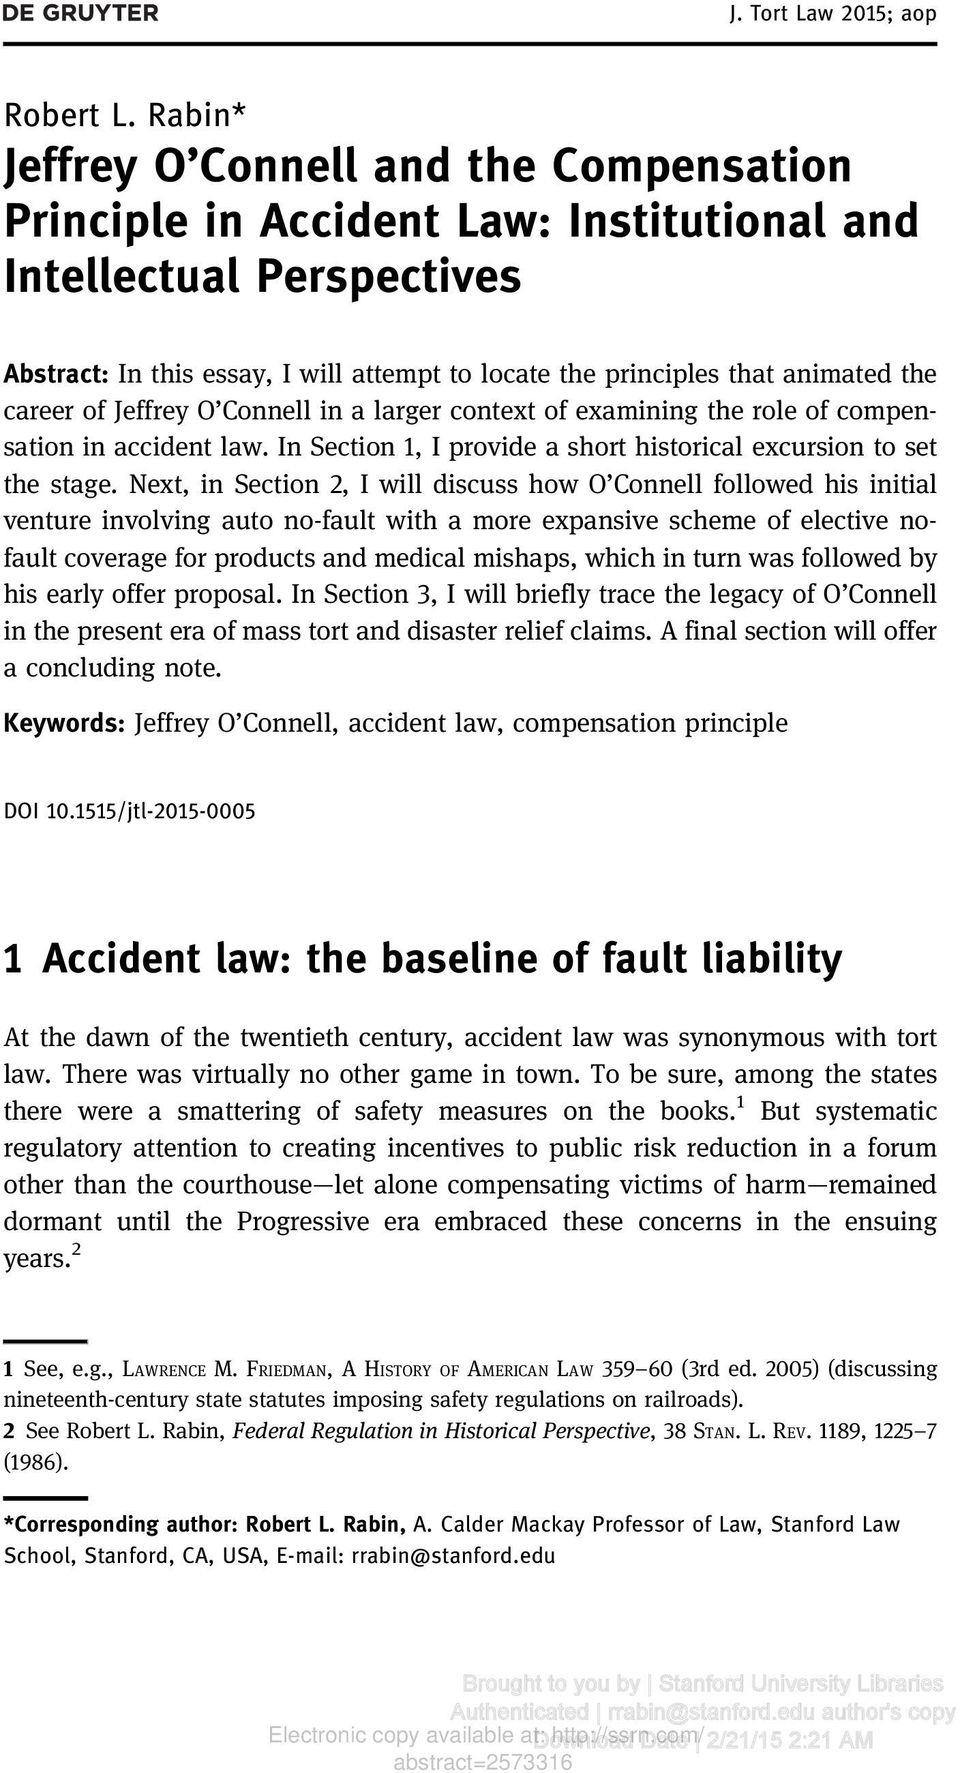 career of Jeffrey O Connell in a larger context of examining the role of compensation in accident law. In Section 1, I provide a short historical excursion to set the stage.